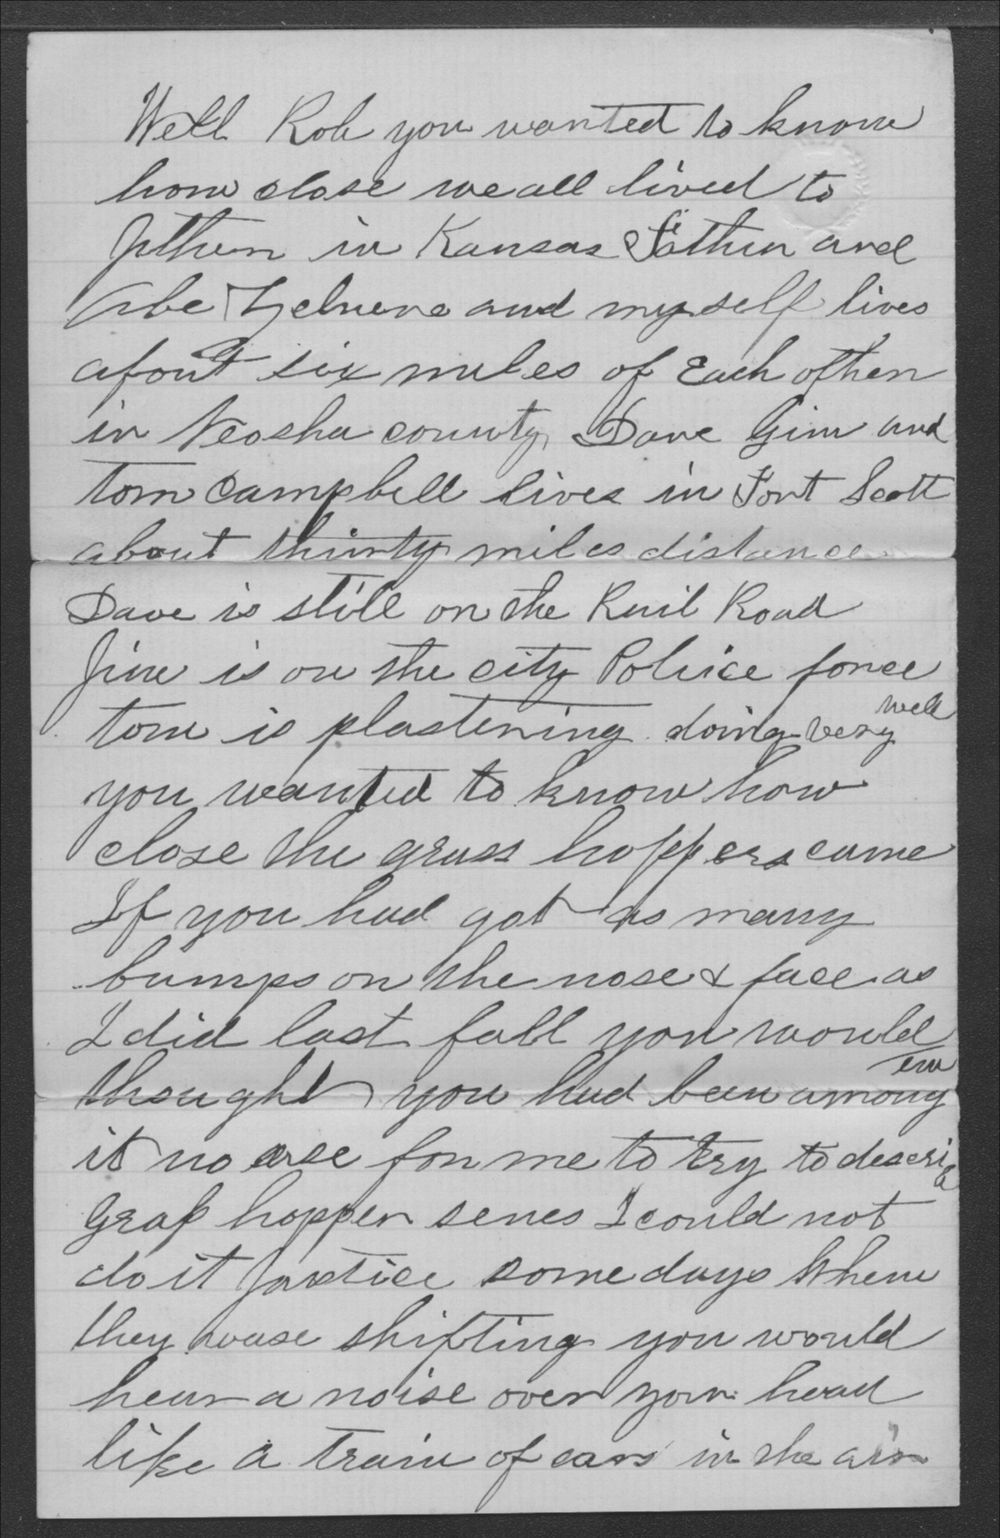 A. W. Johnson and Isabella Johnson to Robert S. Wickizer - 2